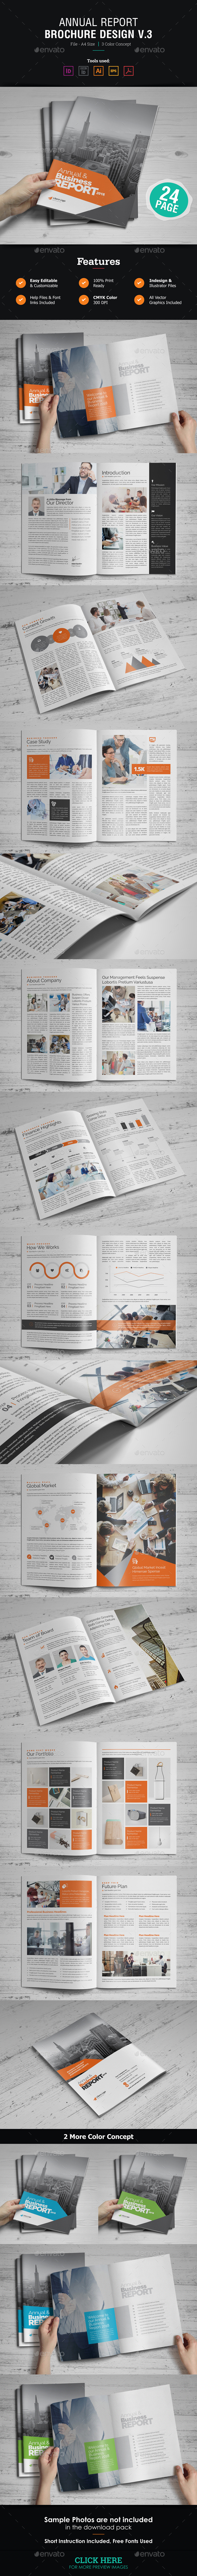 GraphicRiver Annual Report Design v3 21168598